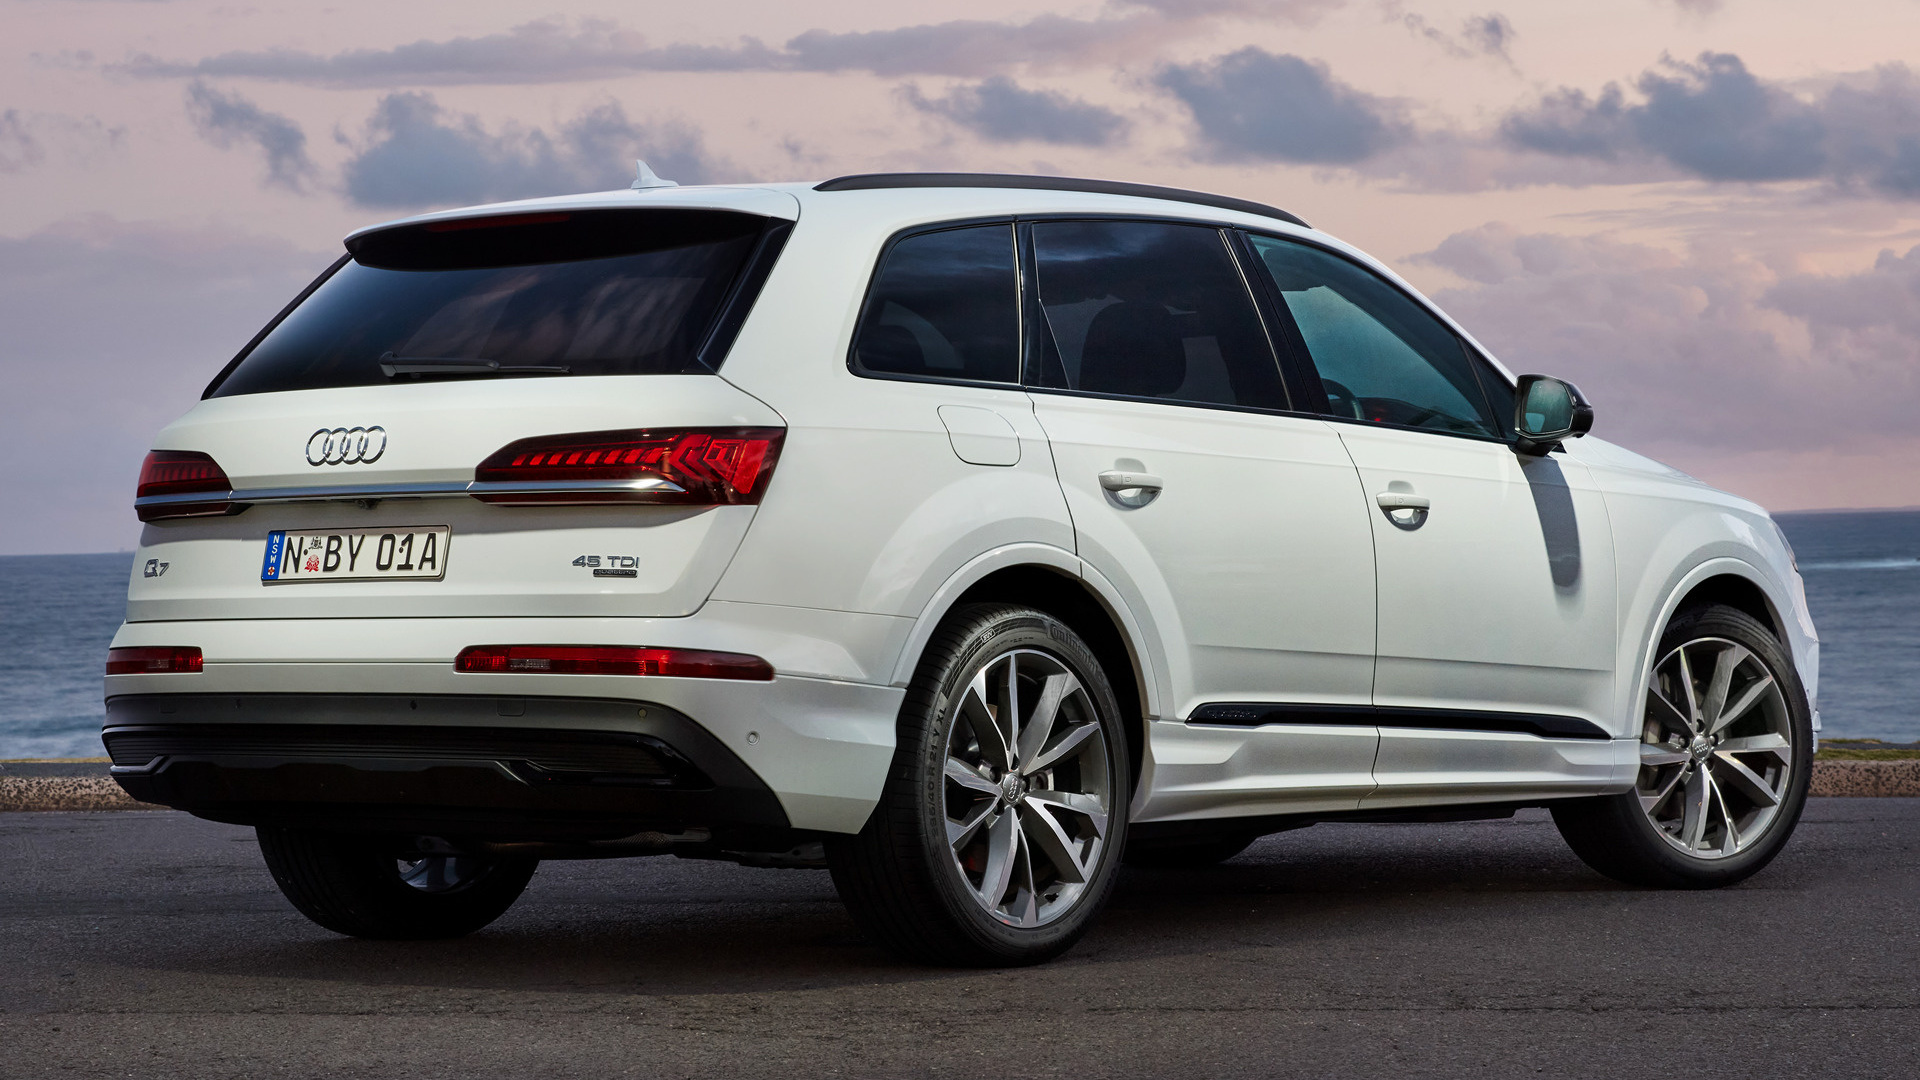 2020 Audi Q7 Release Date and Concept